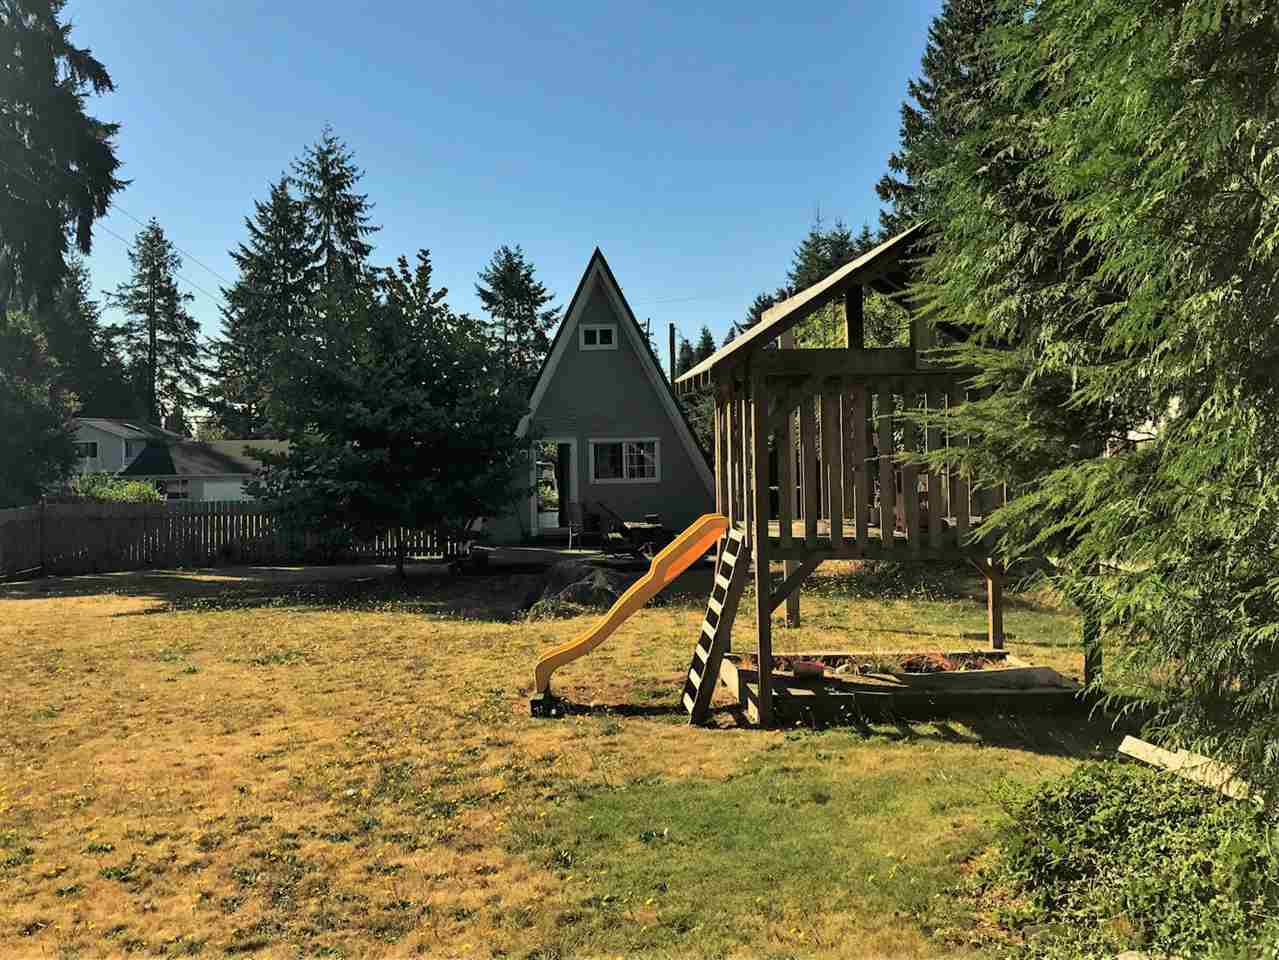 Photo 4: 1134 CHASTER Road in Gibsons: Gibsons & Area House for sale (Sunshine Coast)  : MLS® # R2205007